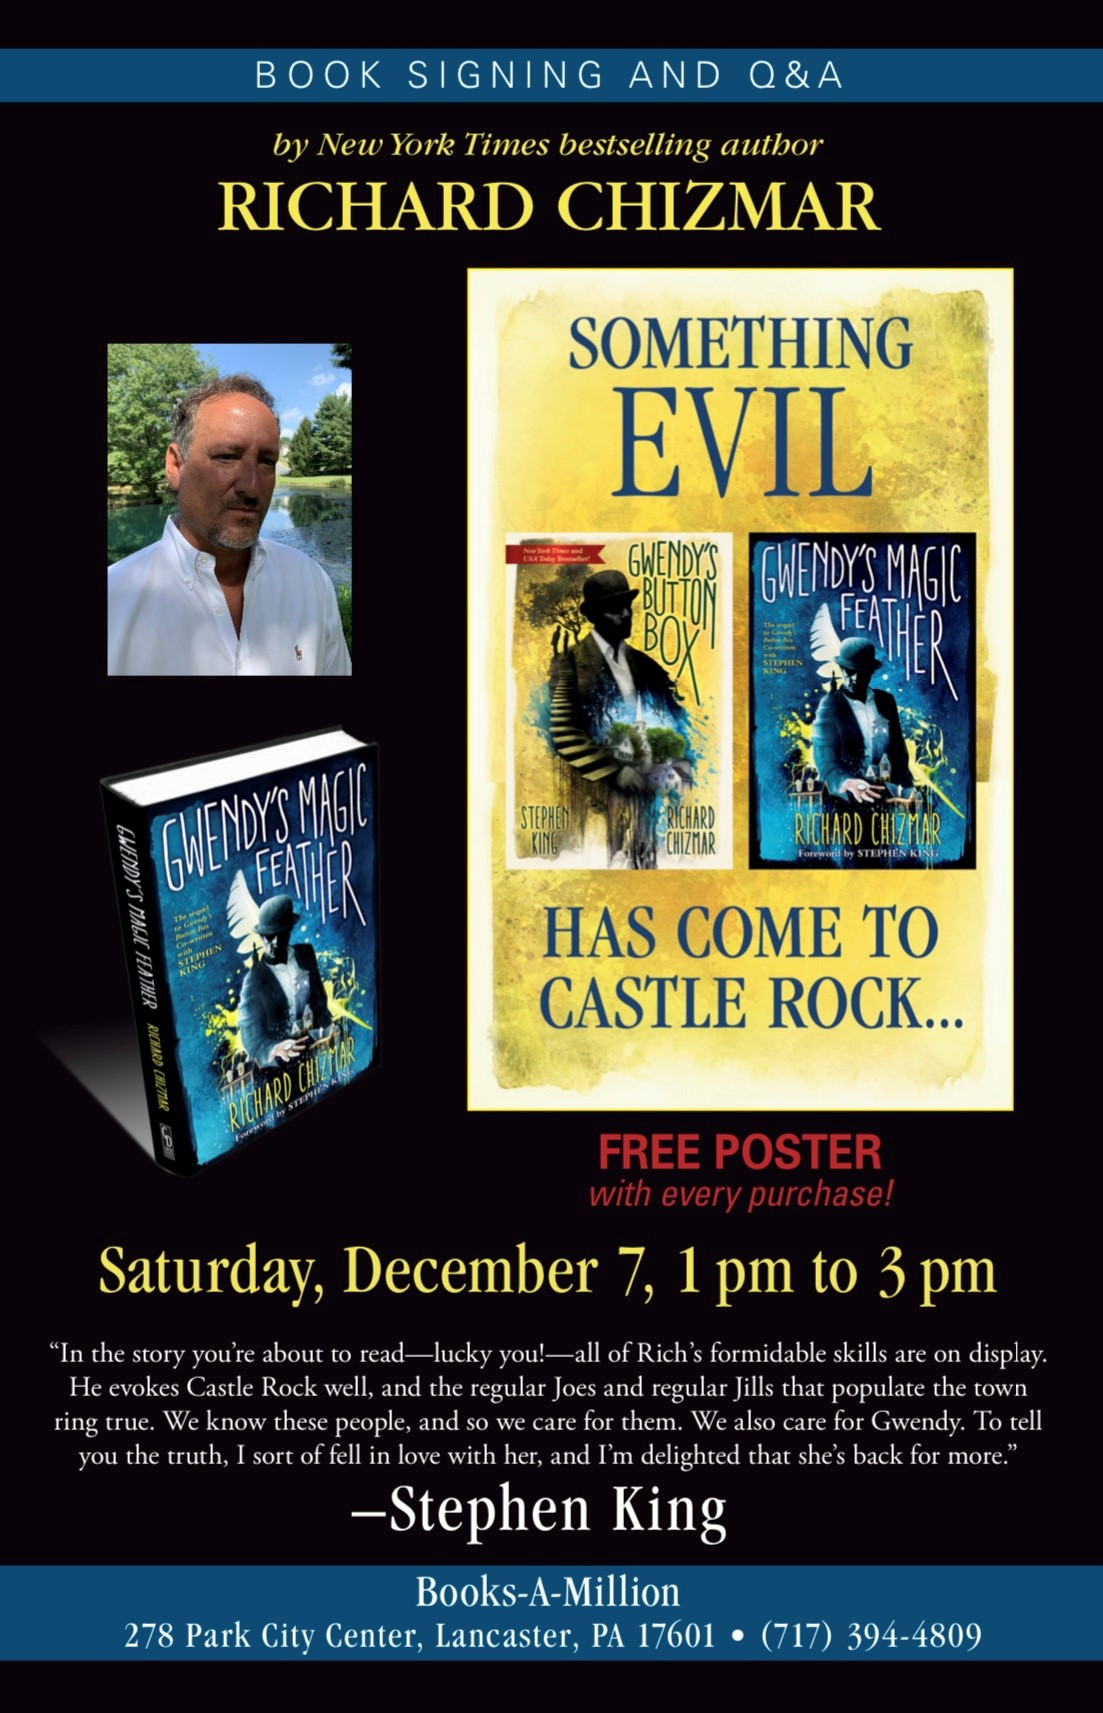 Richard Chizmar, Best Selling Author coming to BAM!